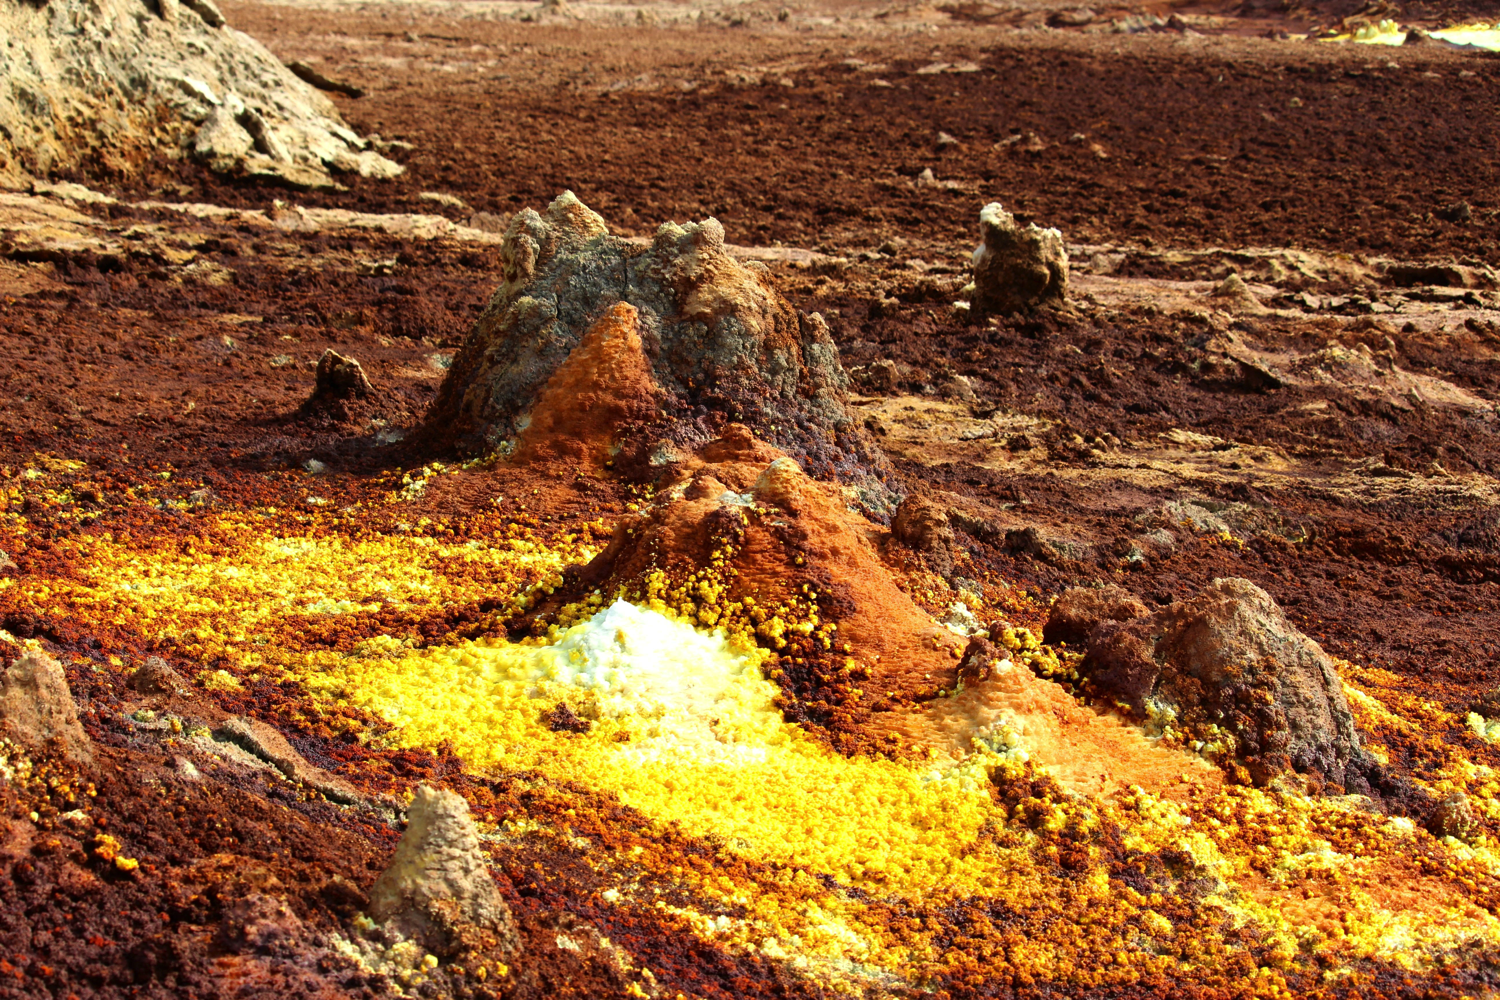 This Toxic Hot Spring Looks Like an Acid-Fuelled Nightmare